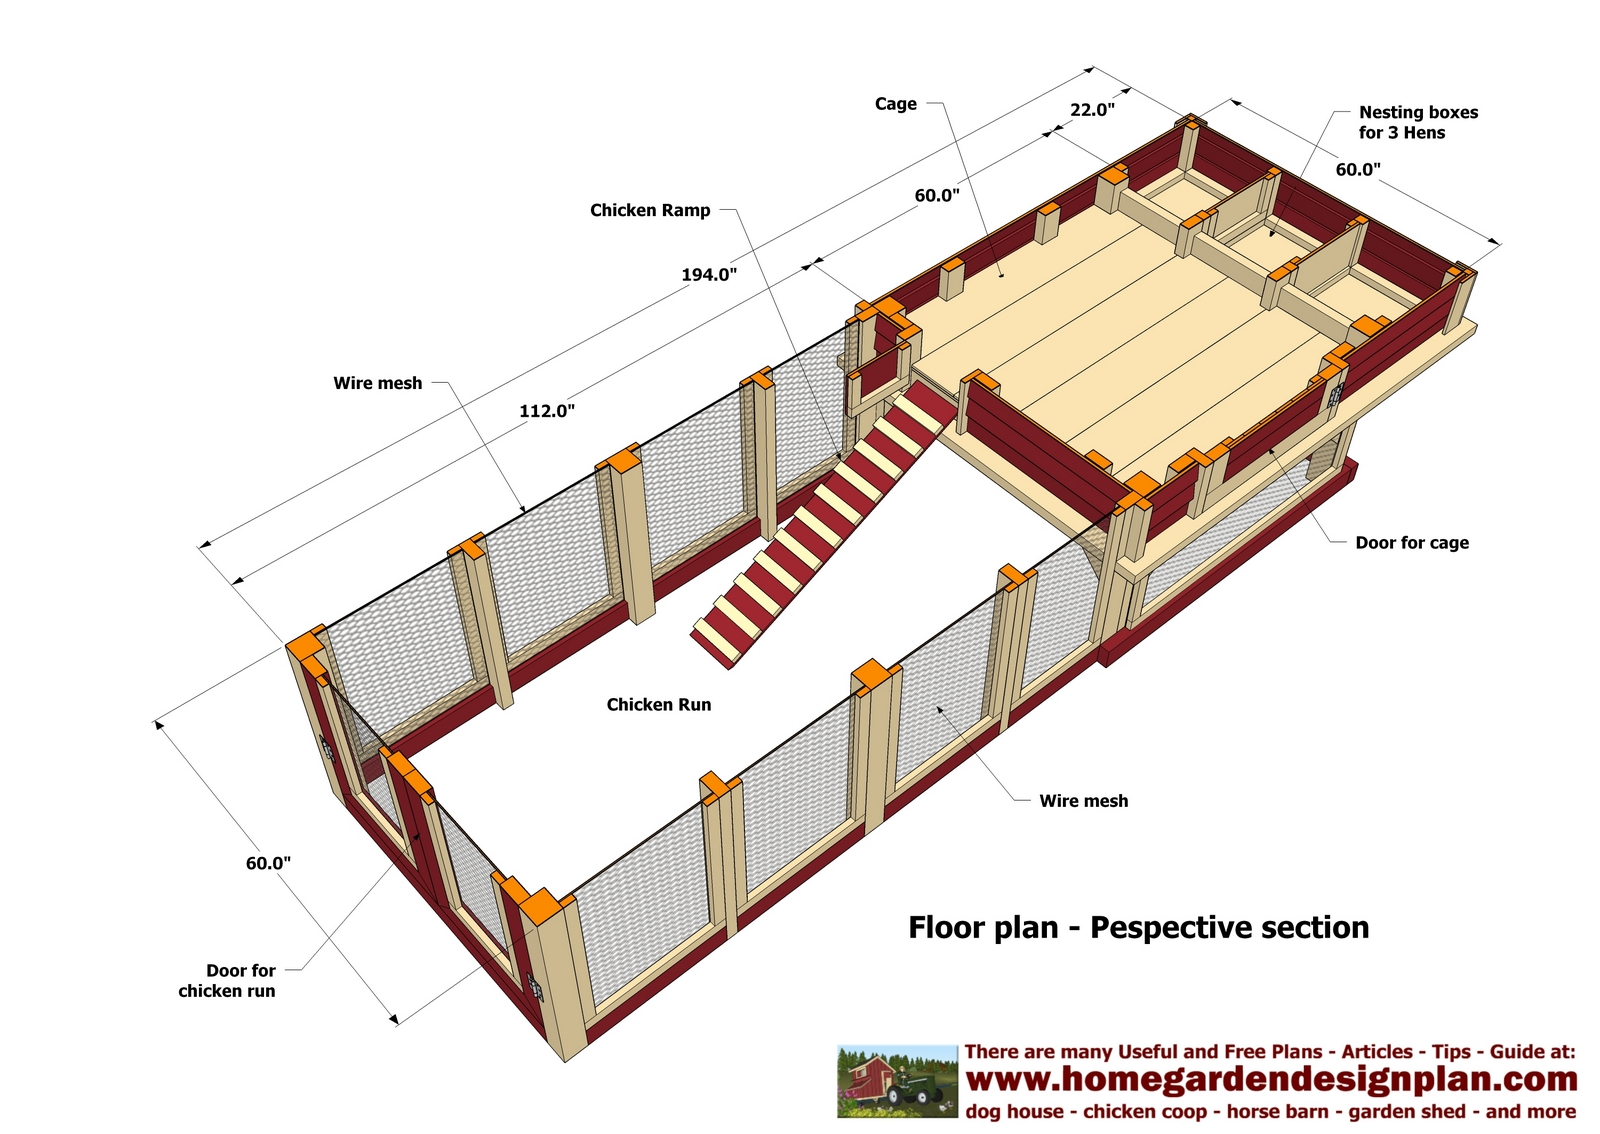 Hen 39 s get chicken coop designs for 100 birds for Poultry house plans for 100 chickens